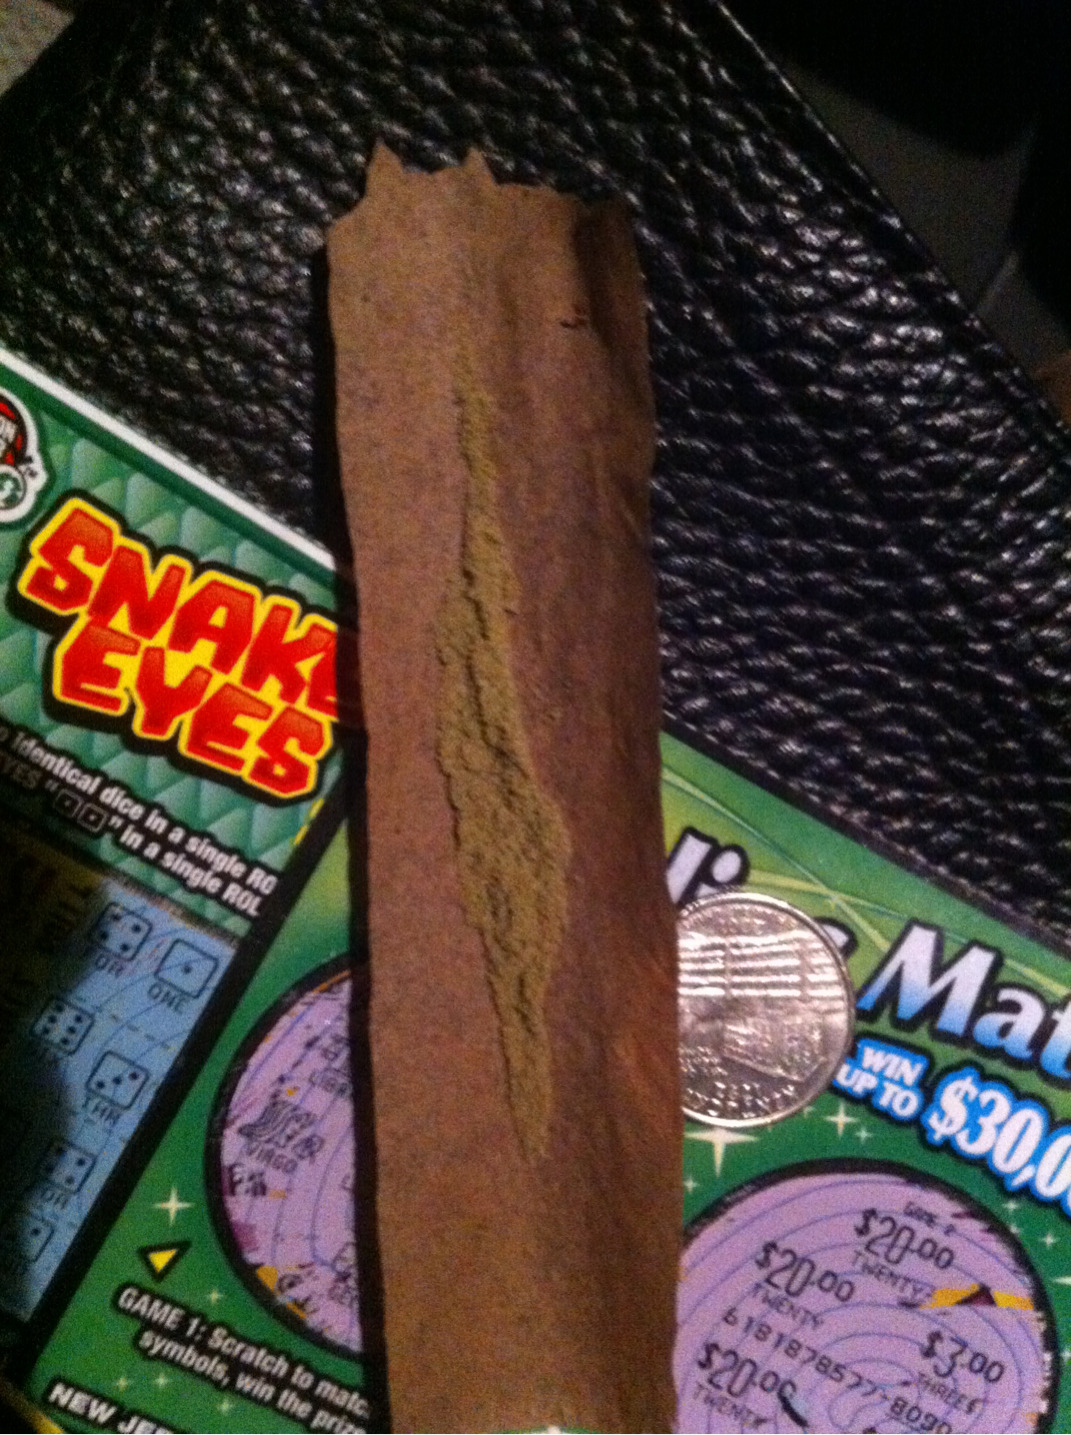 Keif blunt for the richezzzz 🚬🚬🚬🚬💸💸💸💸